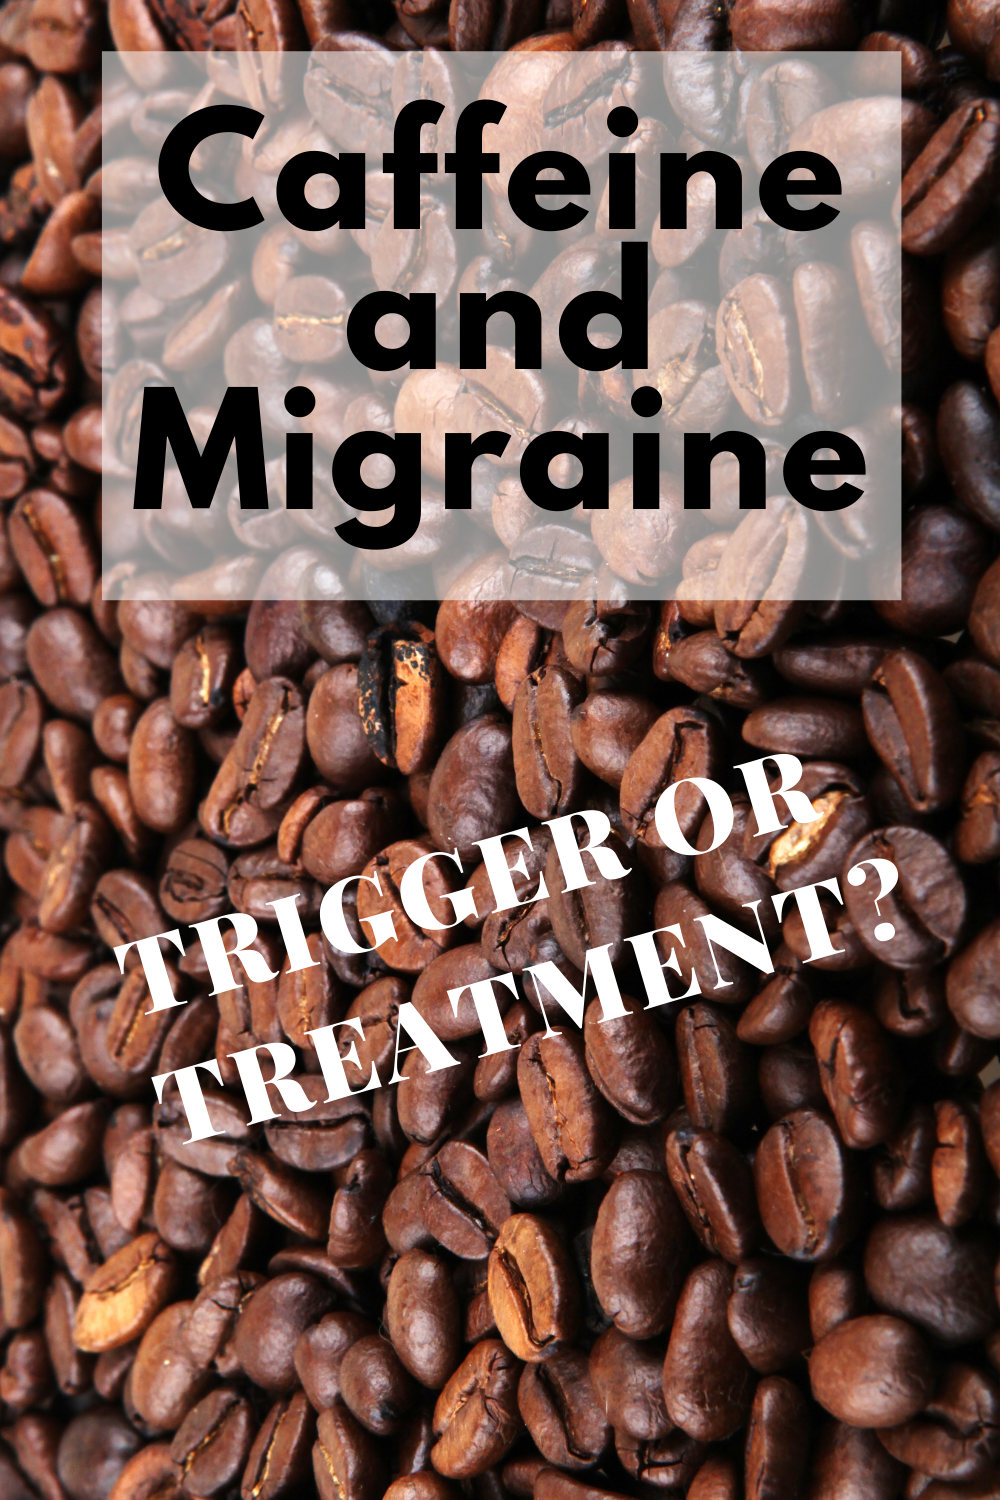 Caffeine and Migraine - Trigger or Treatment